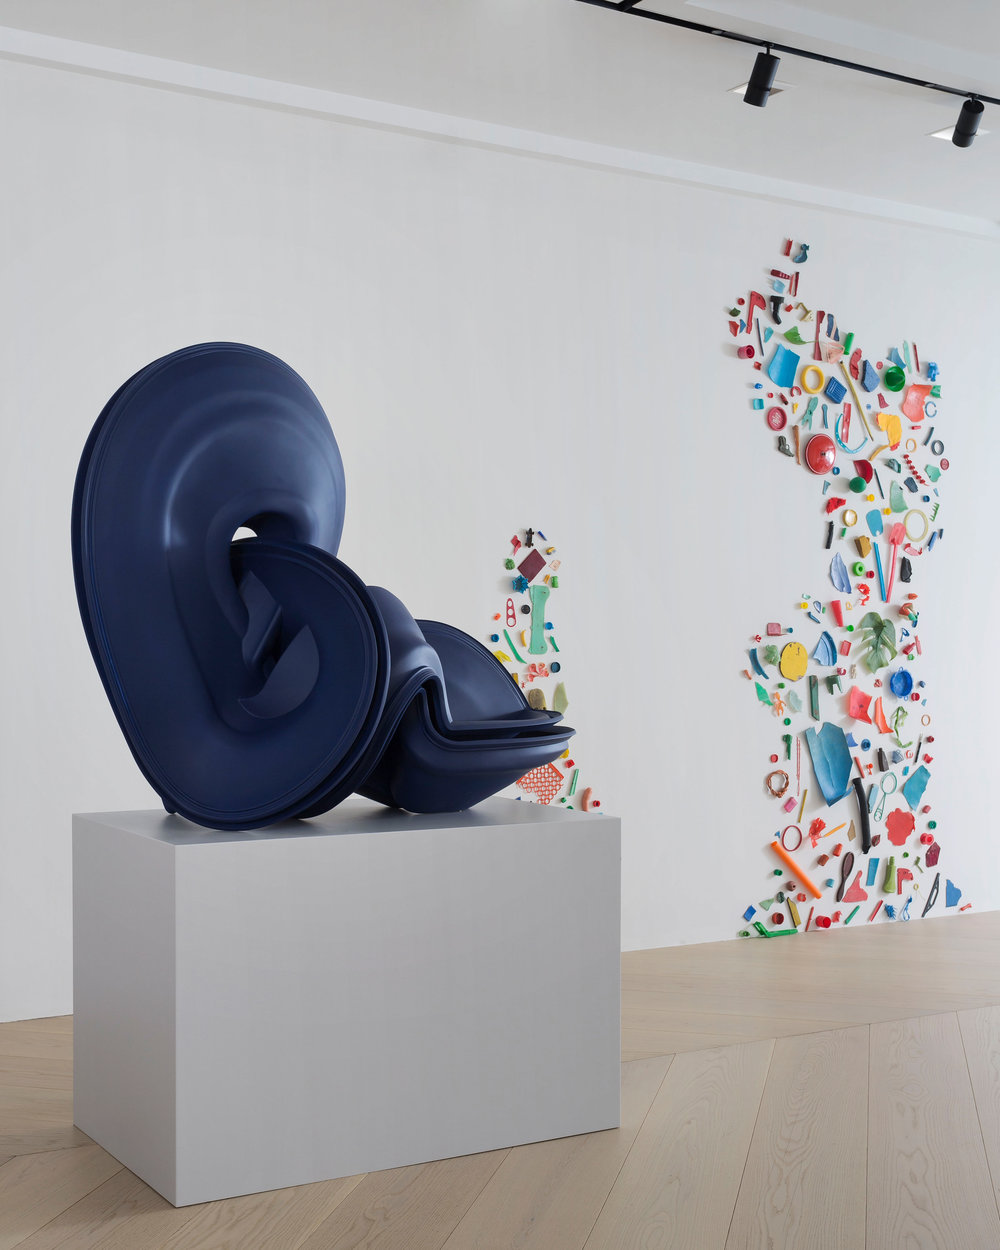 Tony Cragg Primary Colours_installation view 21.jpg